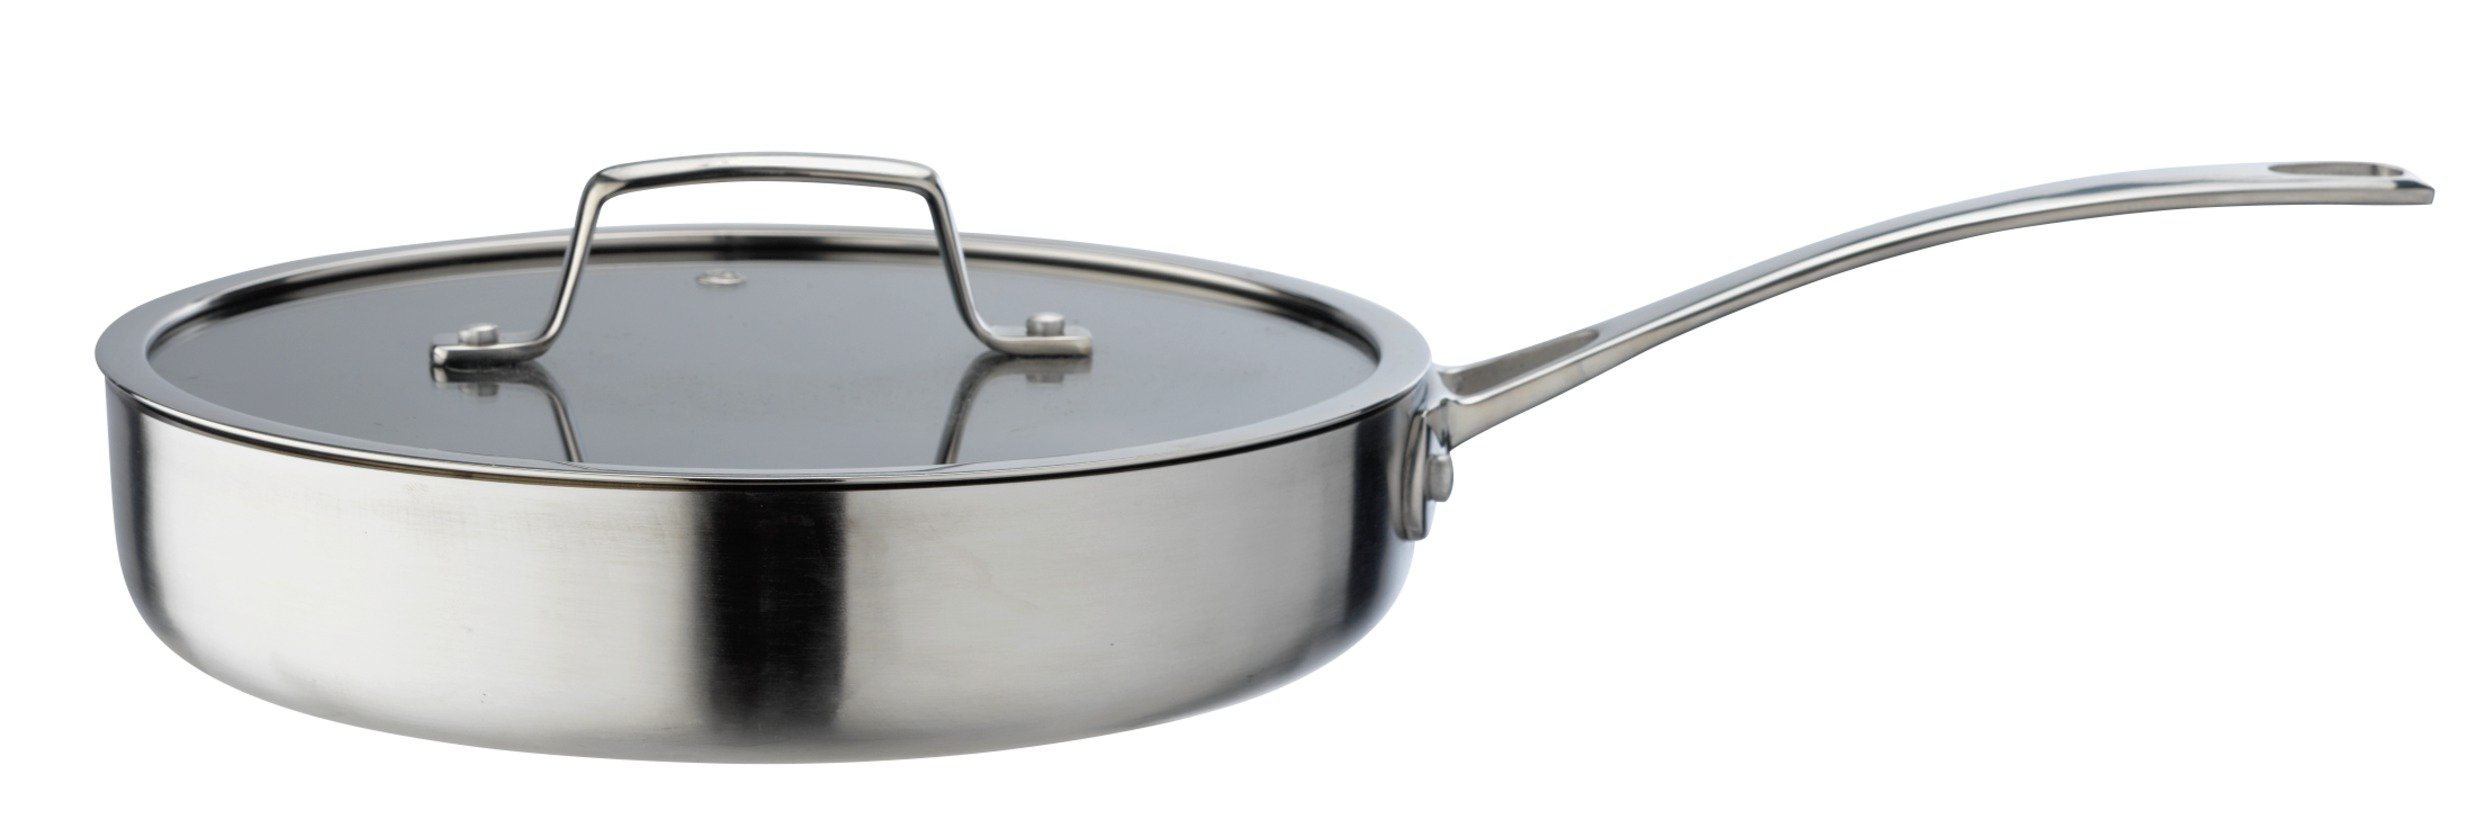 Image of Sainsbury's Home Cooks Collection 24cm Triply Saute Pan